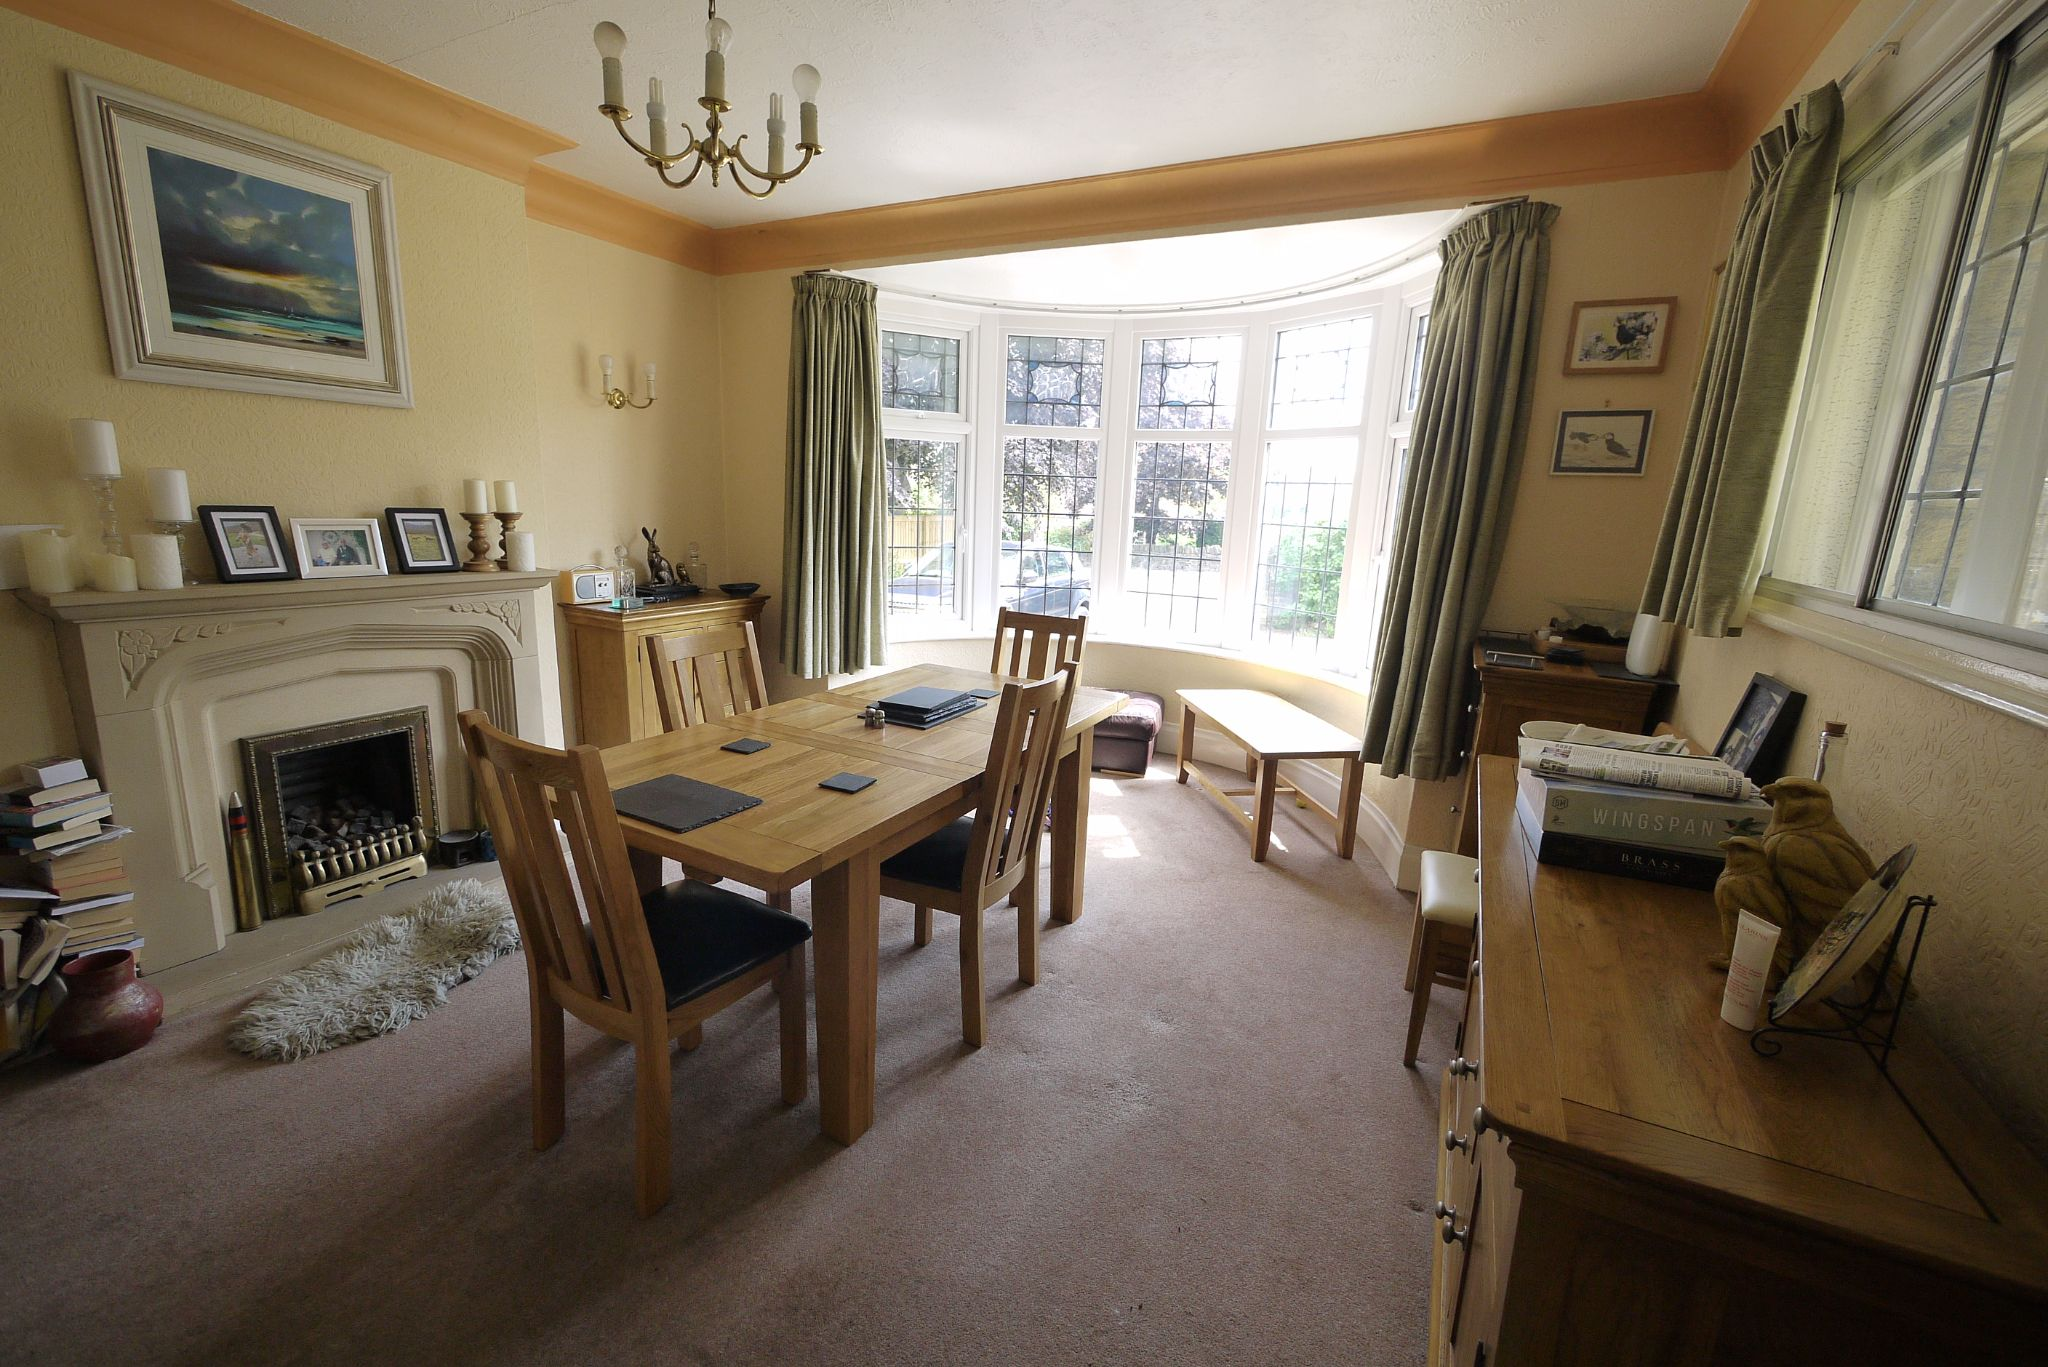 4 bedroom detached house SSTC in Brighouse - Photograph 15.